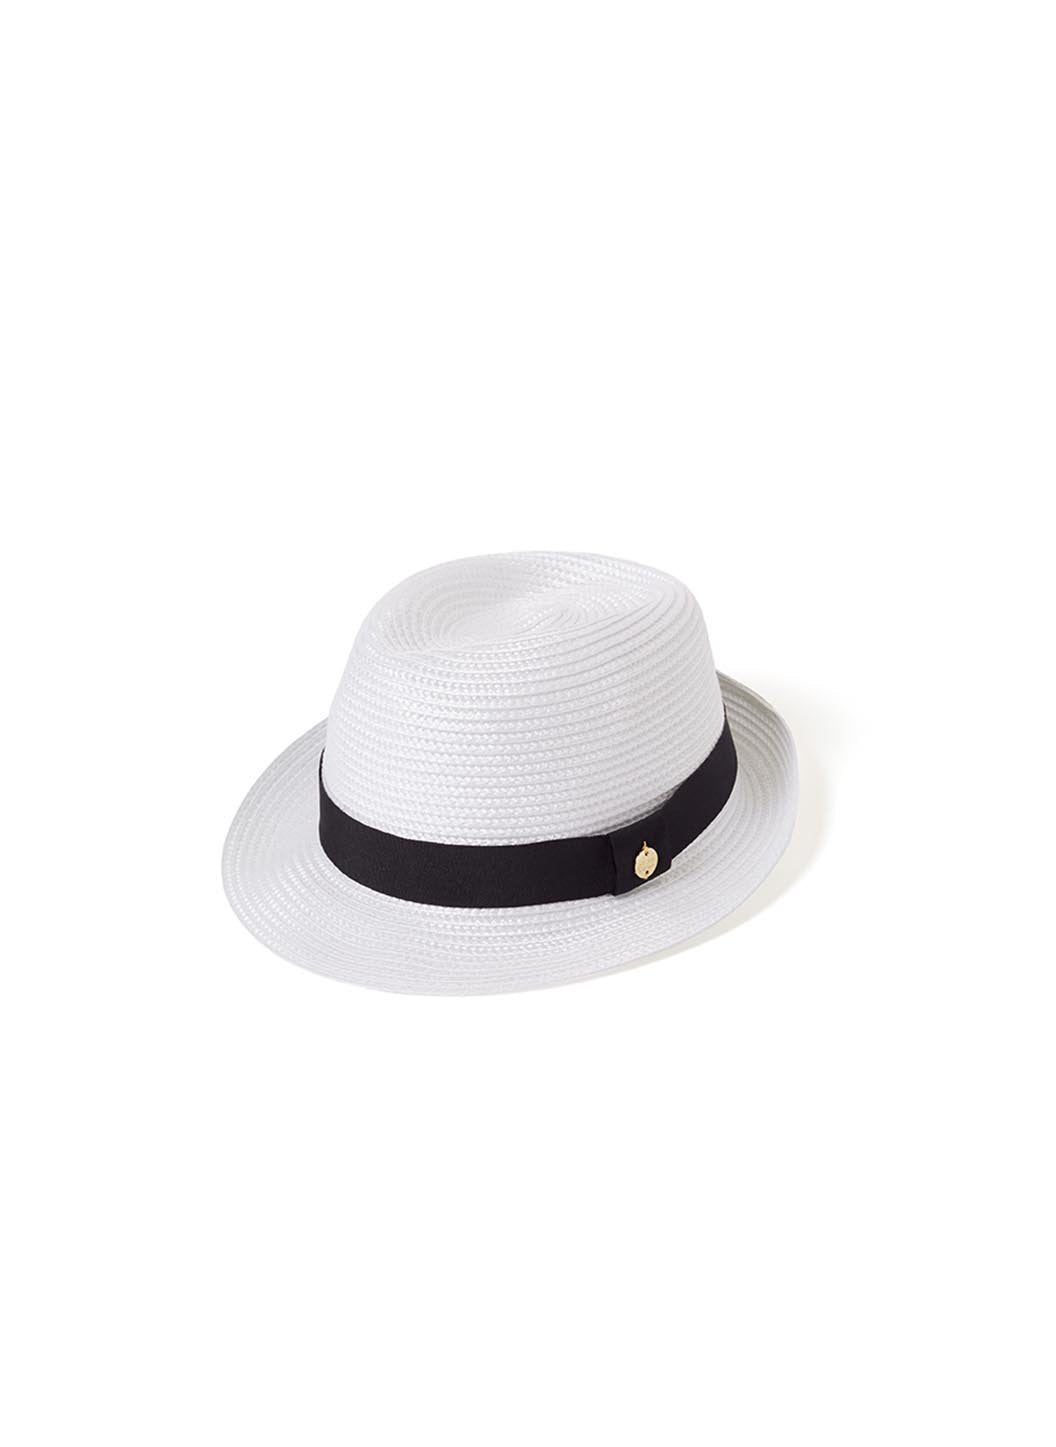 eva hat white black